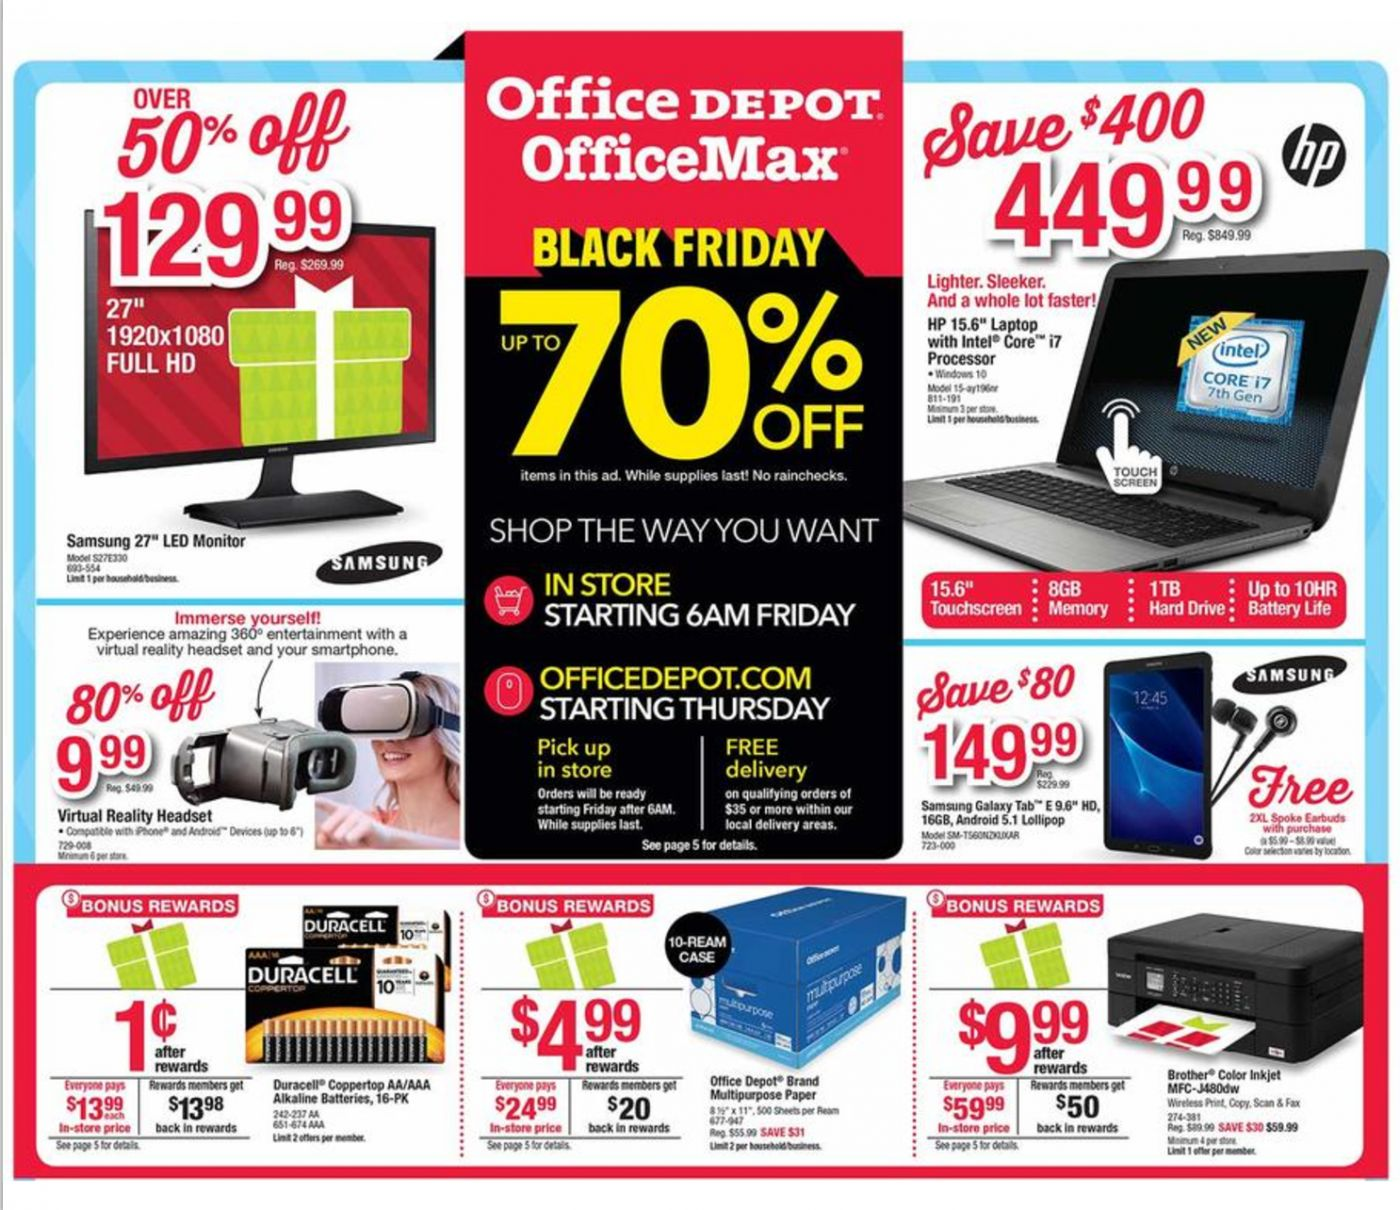 Office Depot Office Max Black Friday Ad Scan 2016 {with